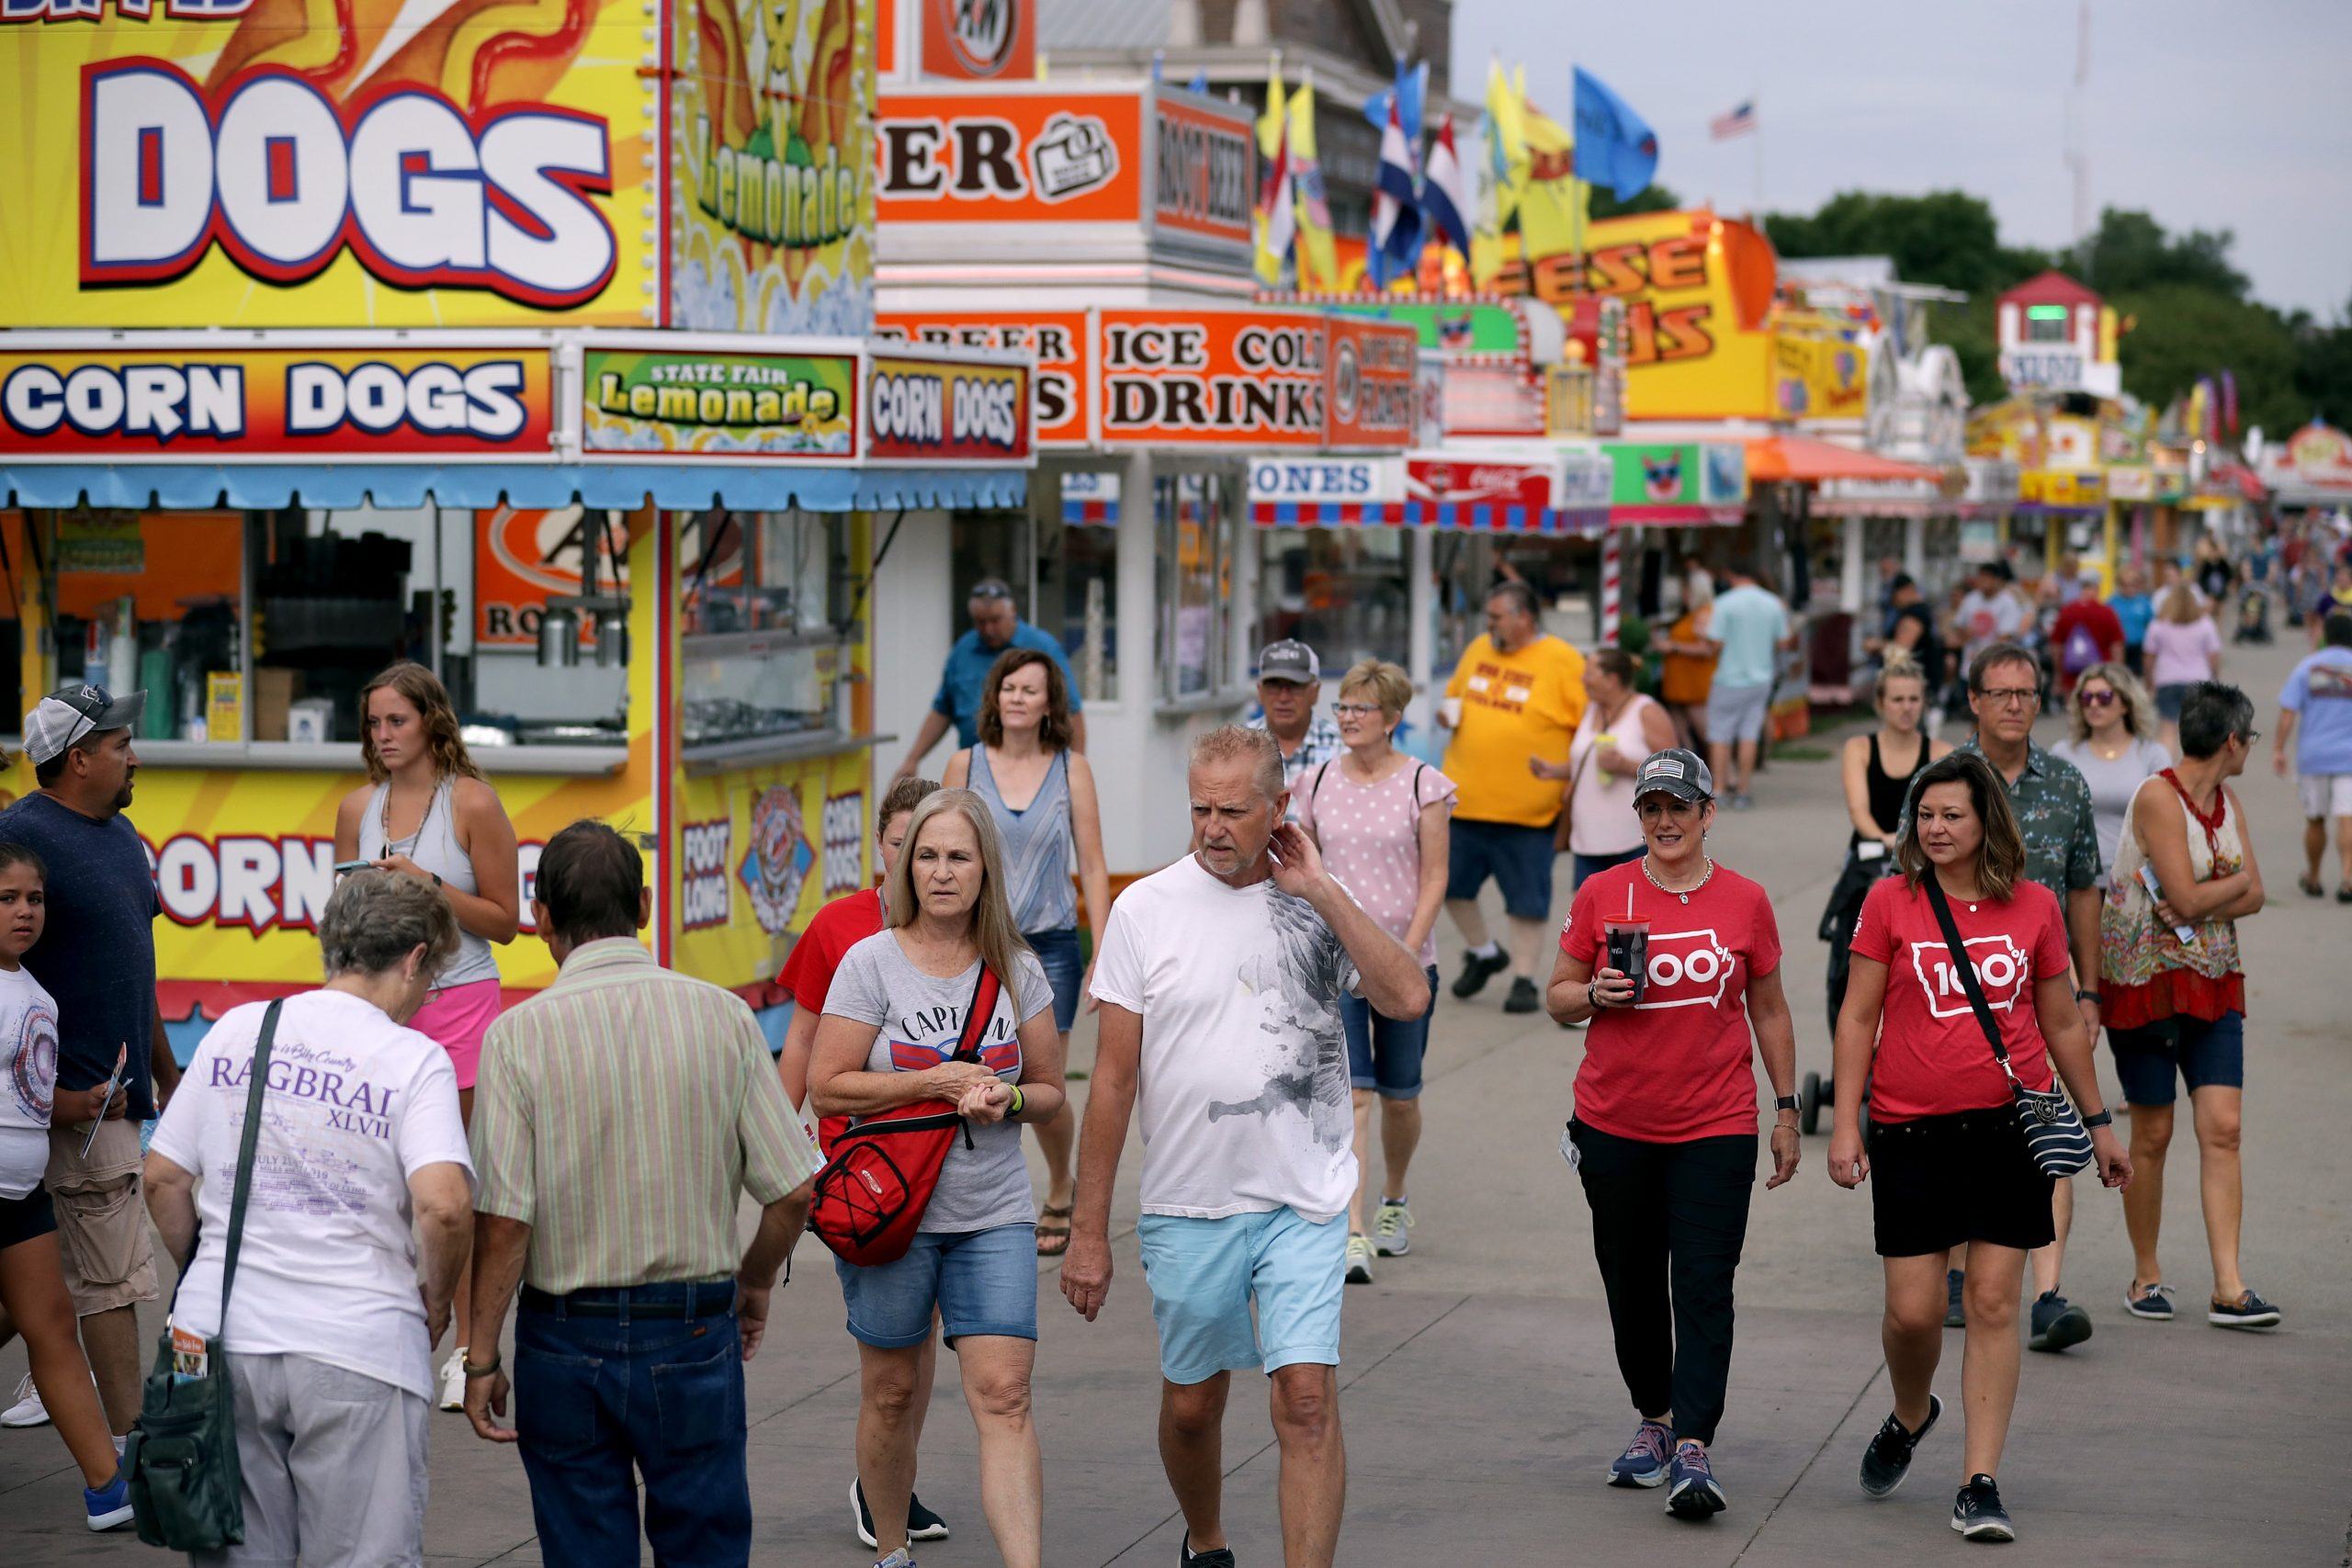 State Fair Cancelation Brings Mixed Feelings for Des Moines Eastsiders 8